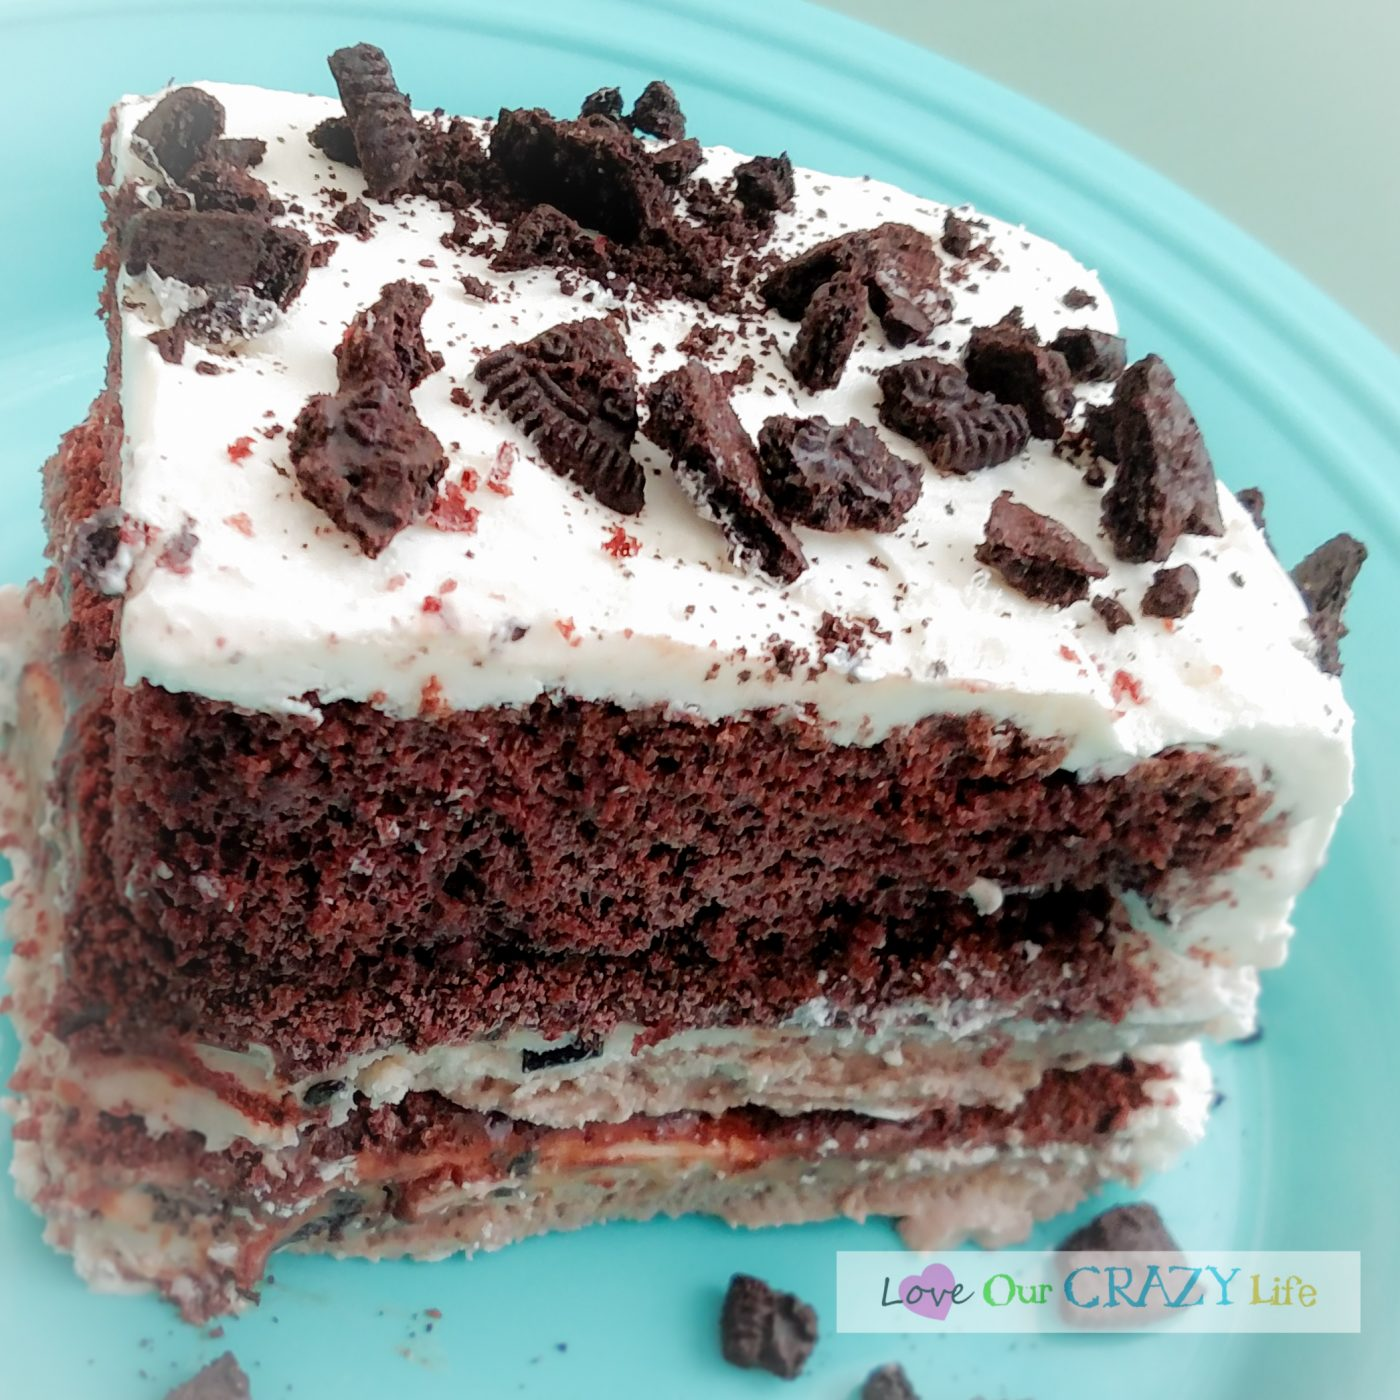 Delicious 7 Layer Ice Cream Cake